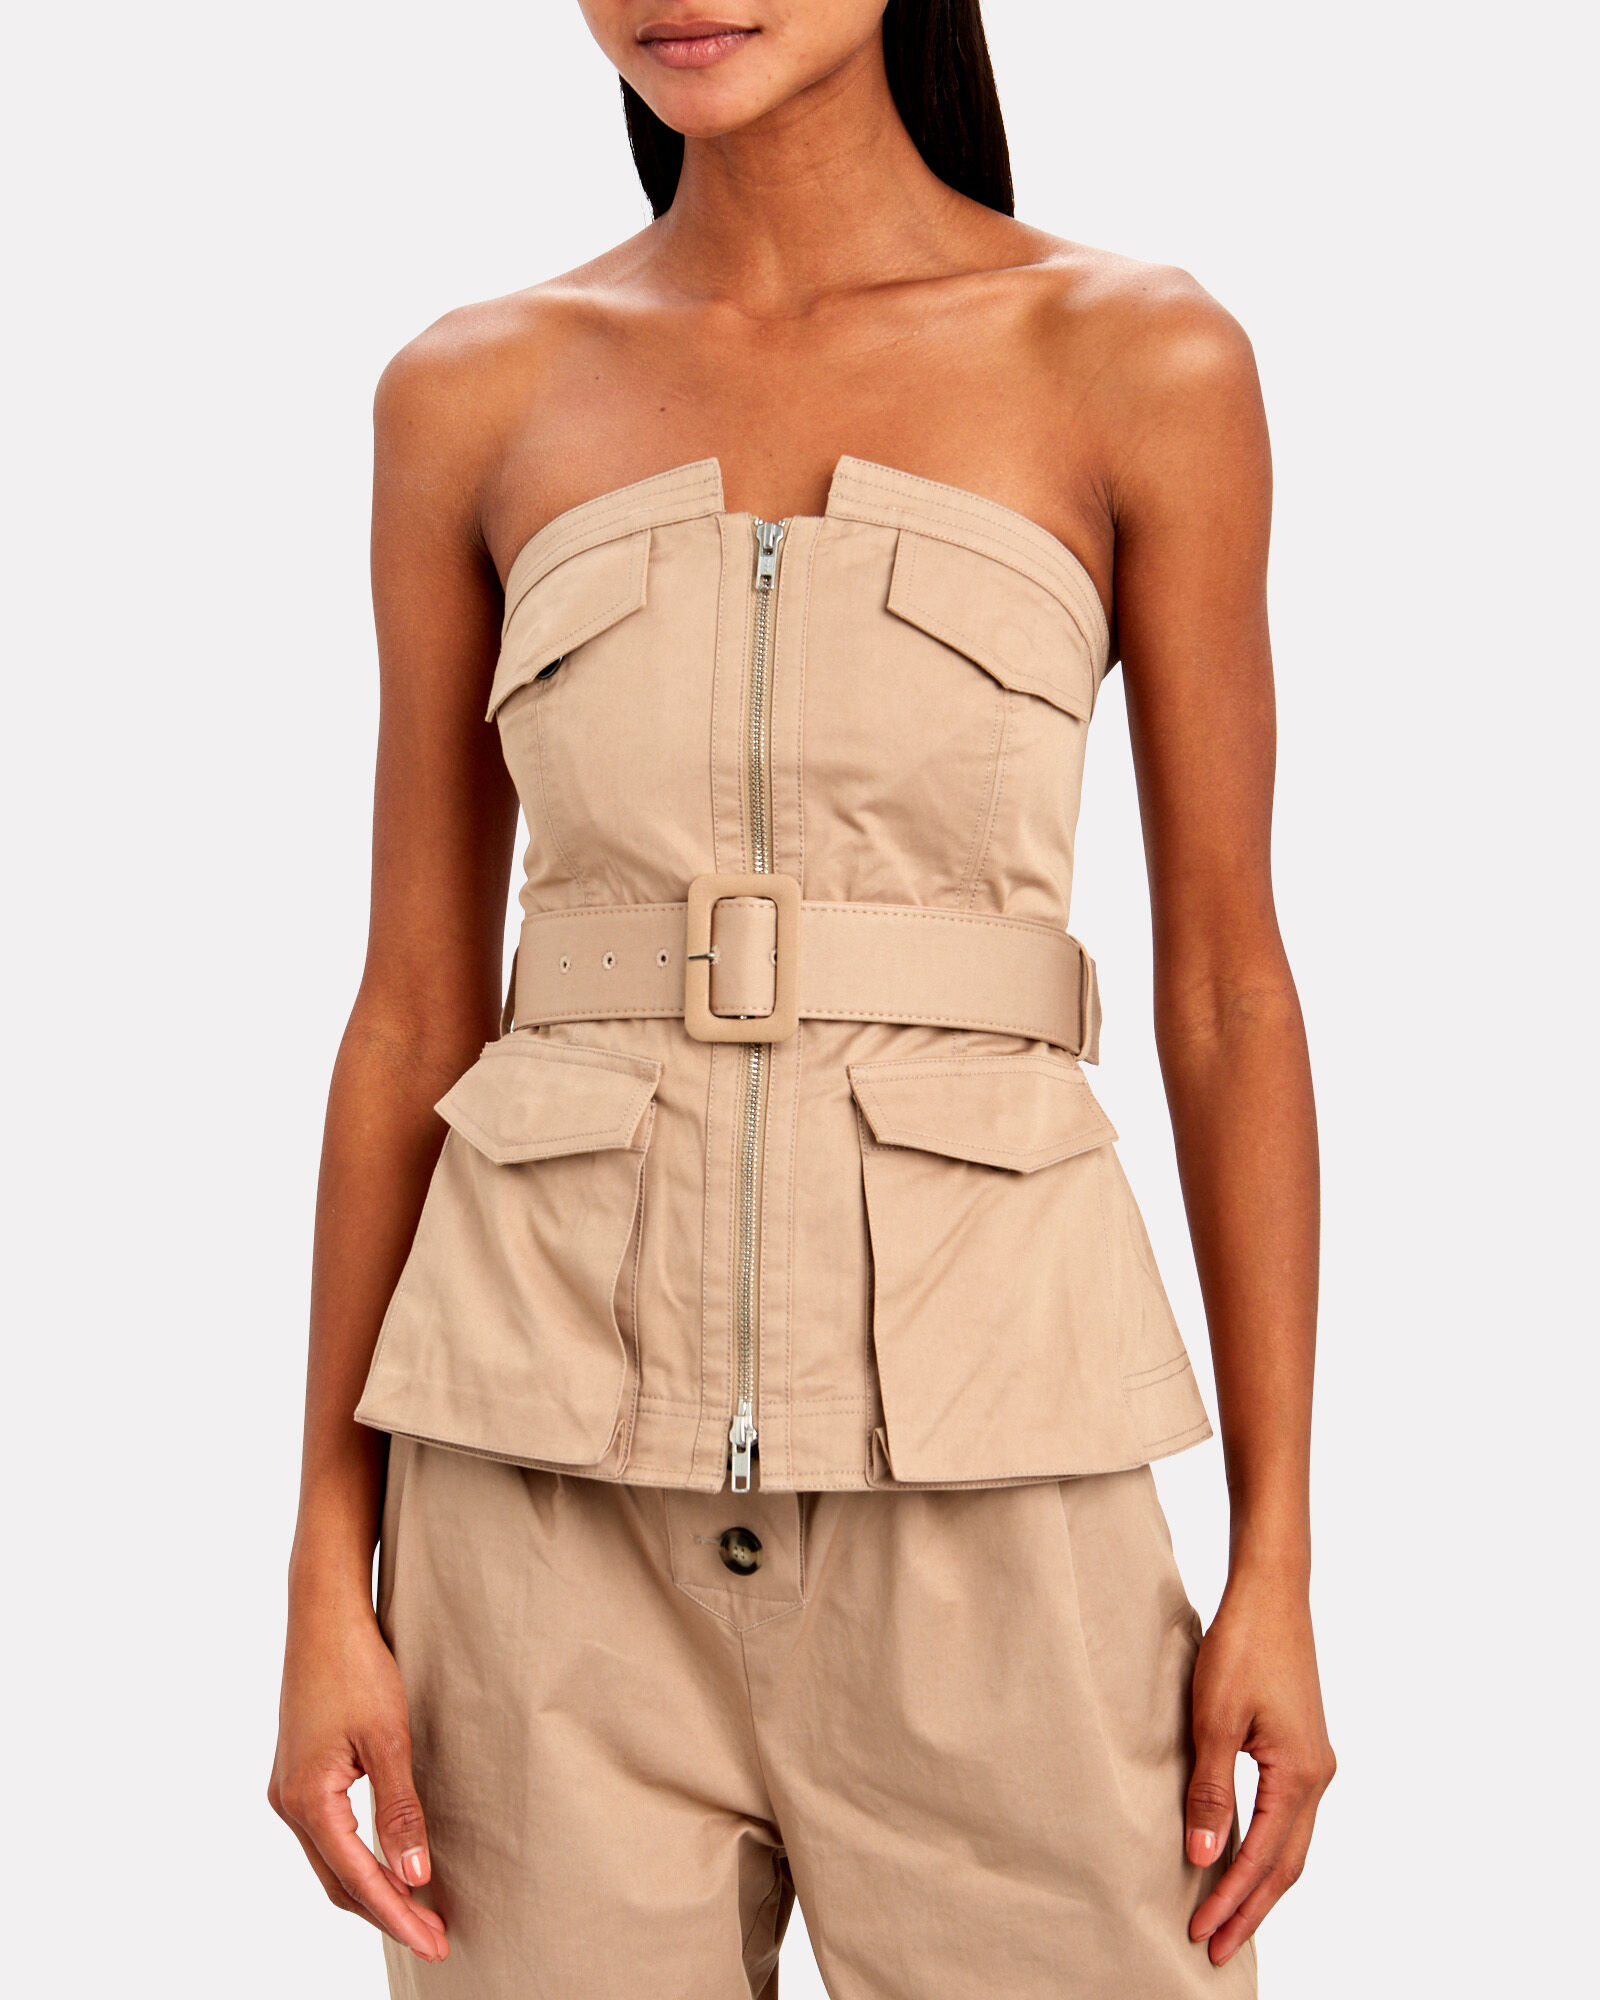 Belted Strapless Trench Top, BEIGE, hi-res